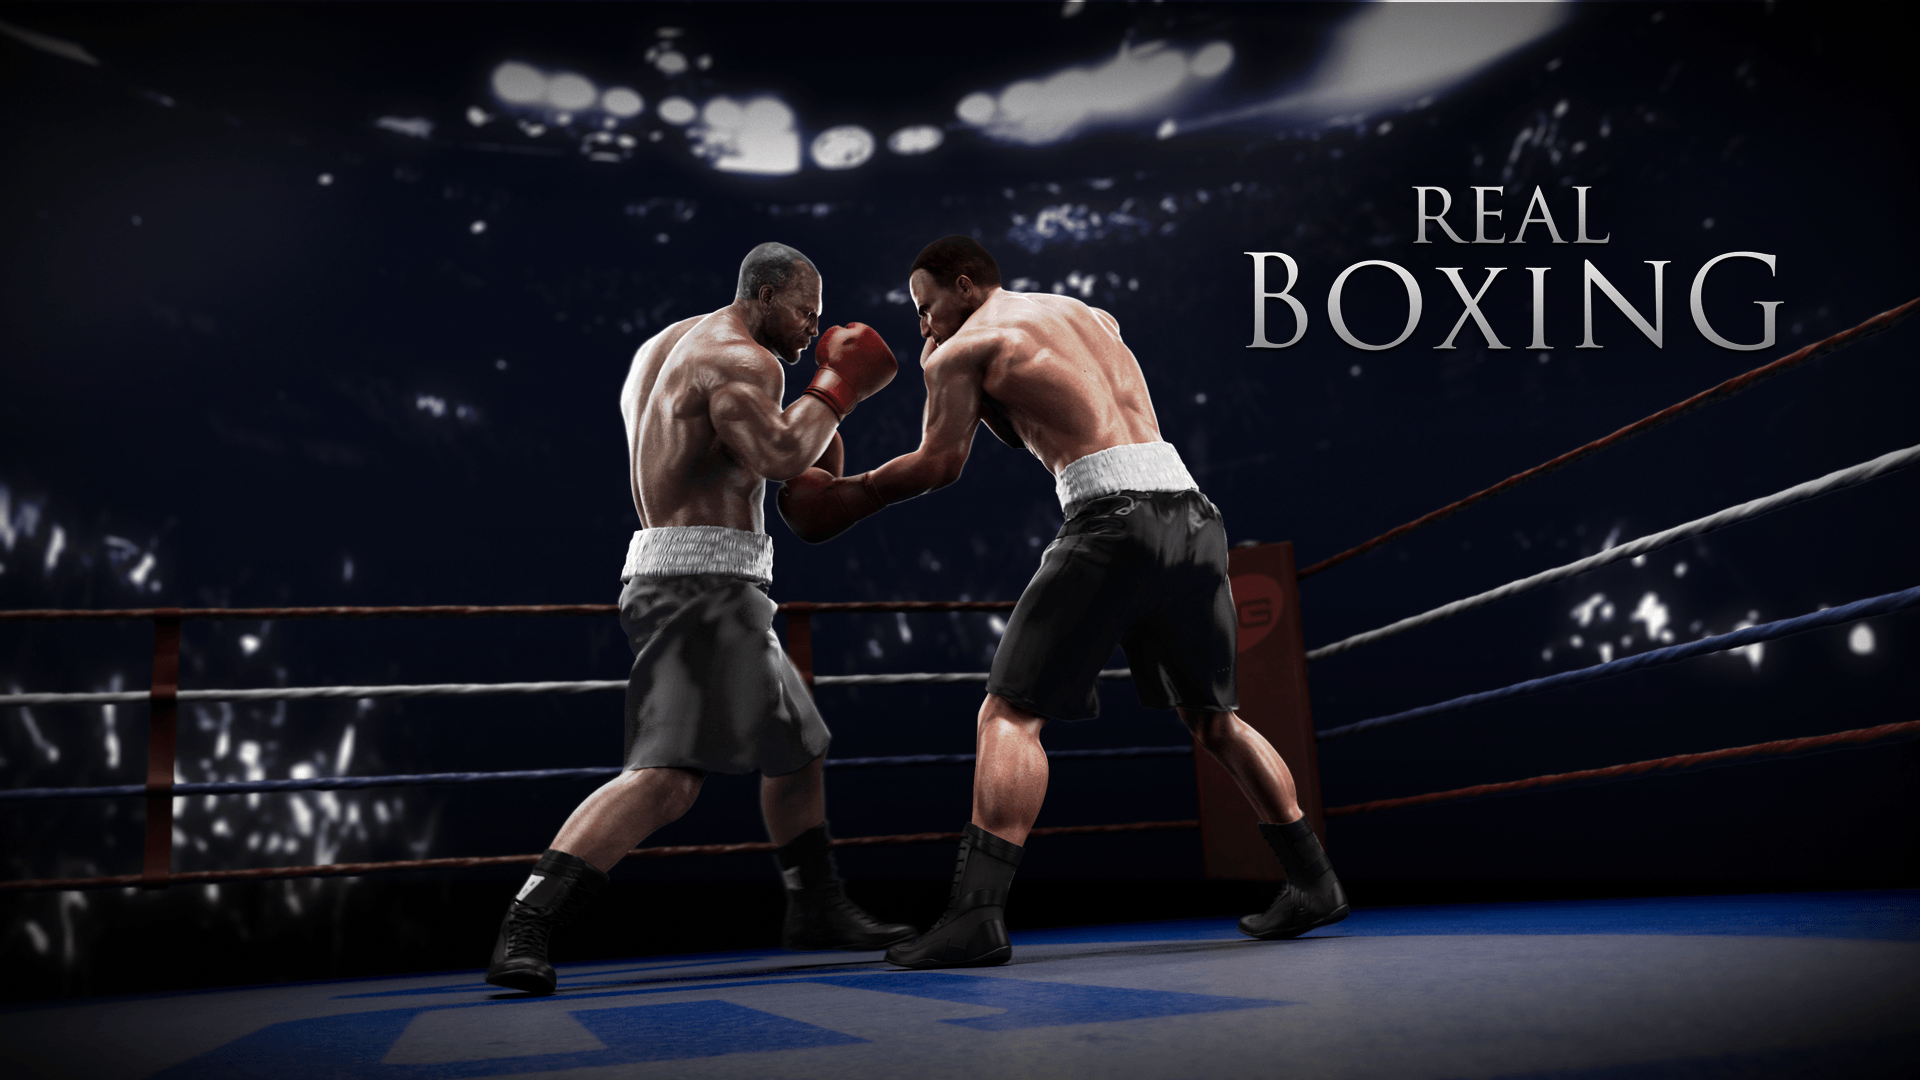 Boxeo Wallpapers HD - Fondo de pantalla de la cueva